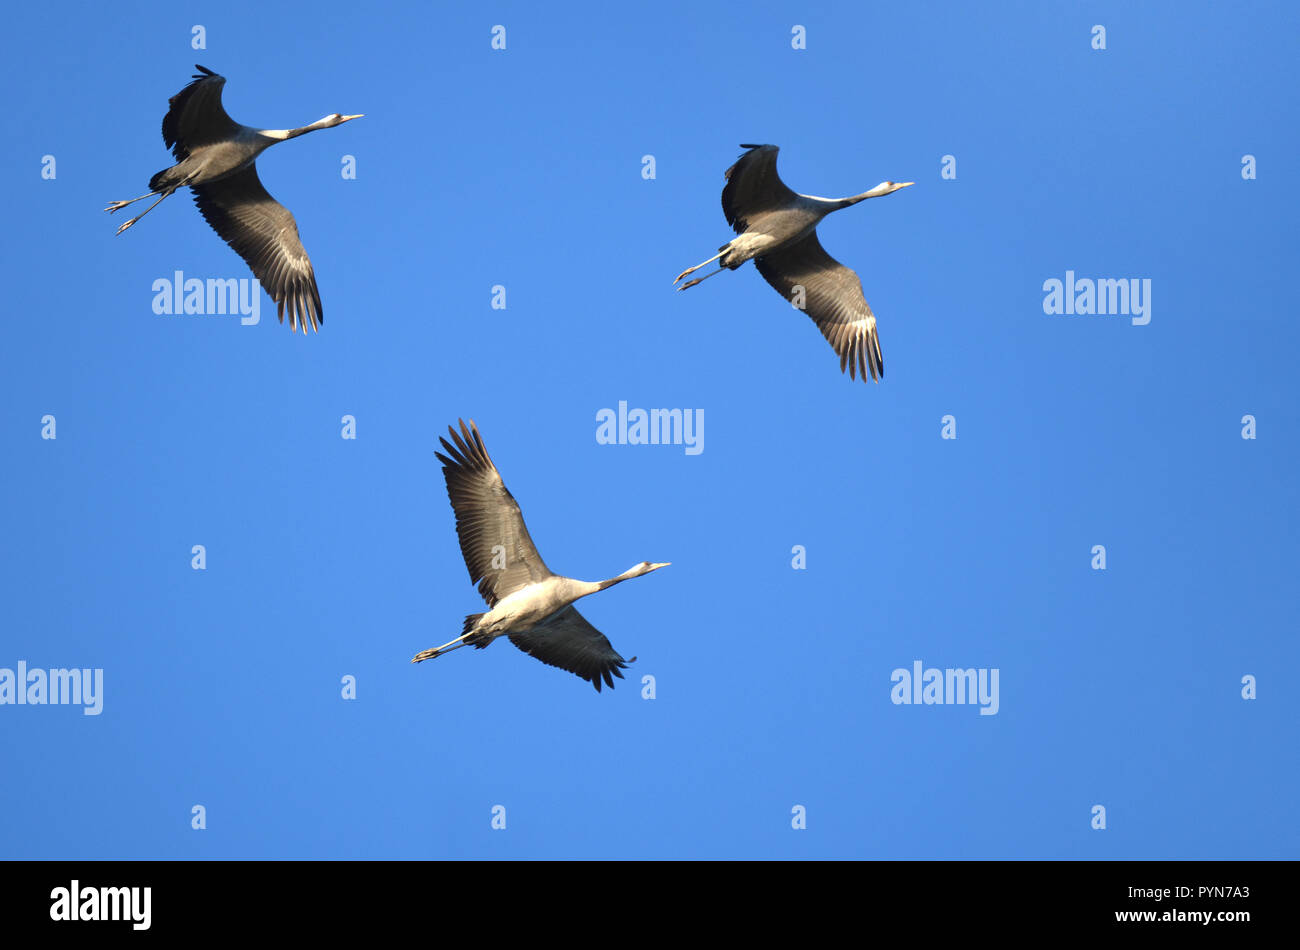 A flight of common cranes (grus grus) over the ponds of Arjuzanx, south western France. Stock Photo